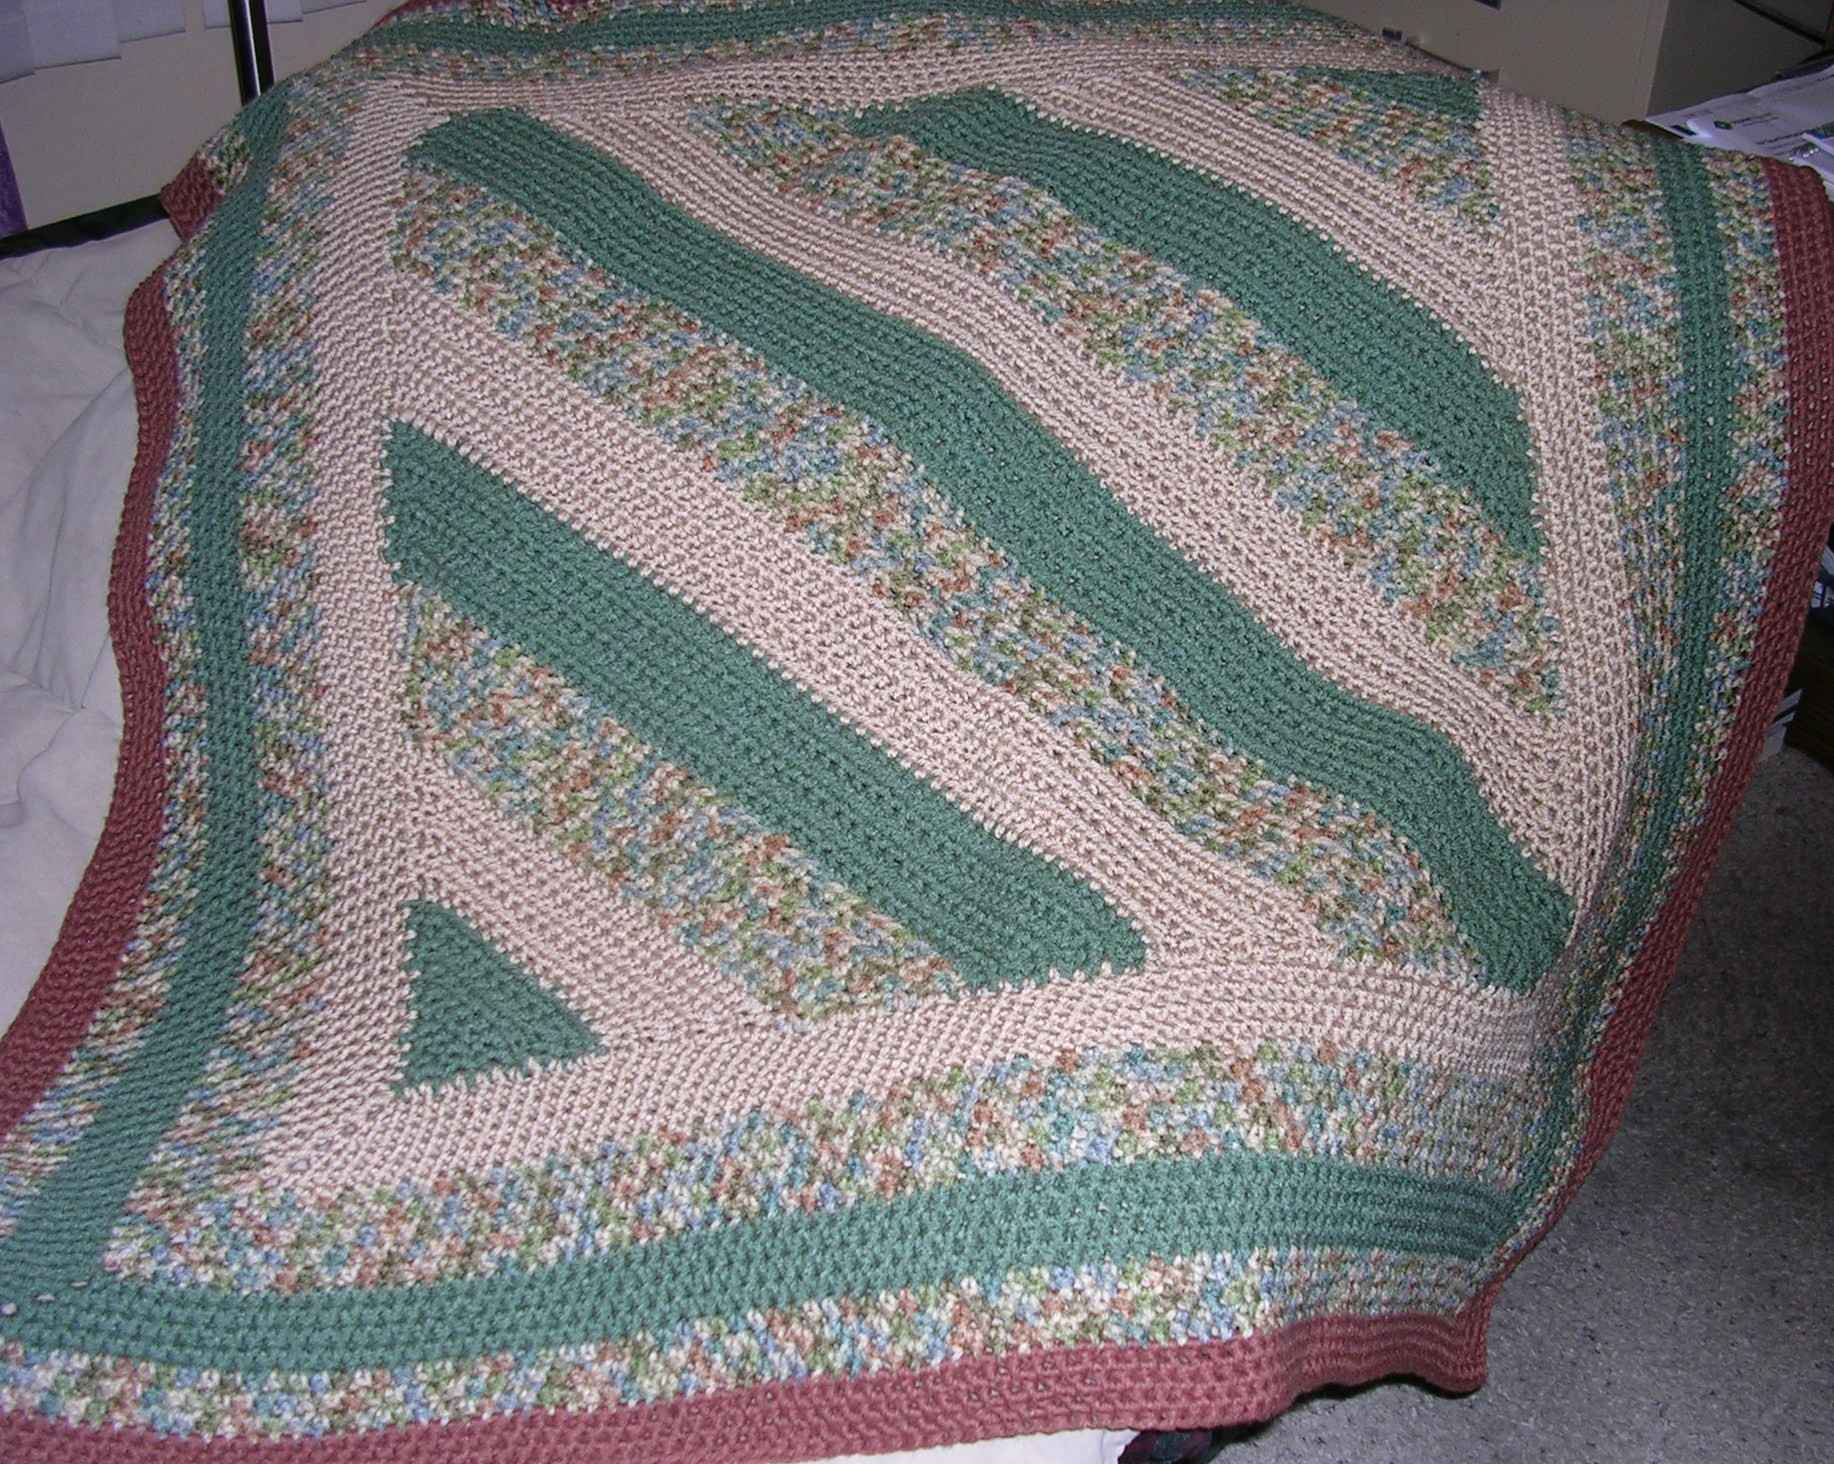 Ministry Crochet Projects